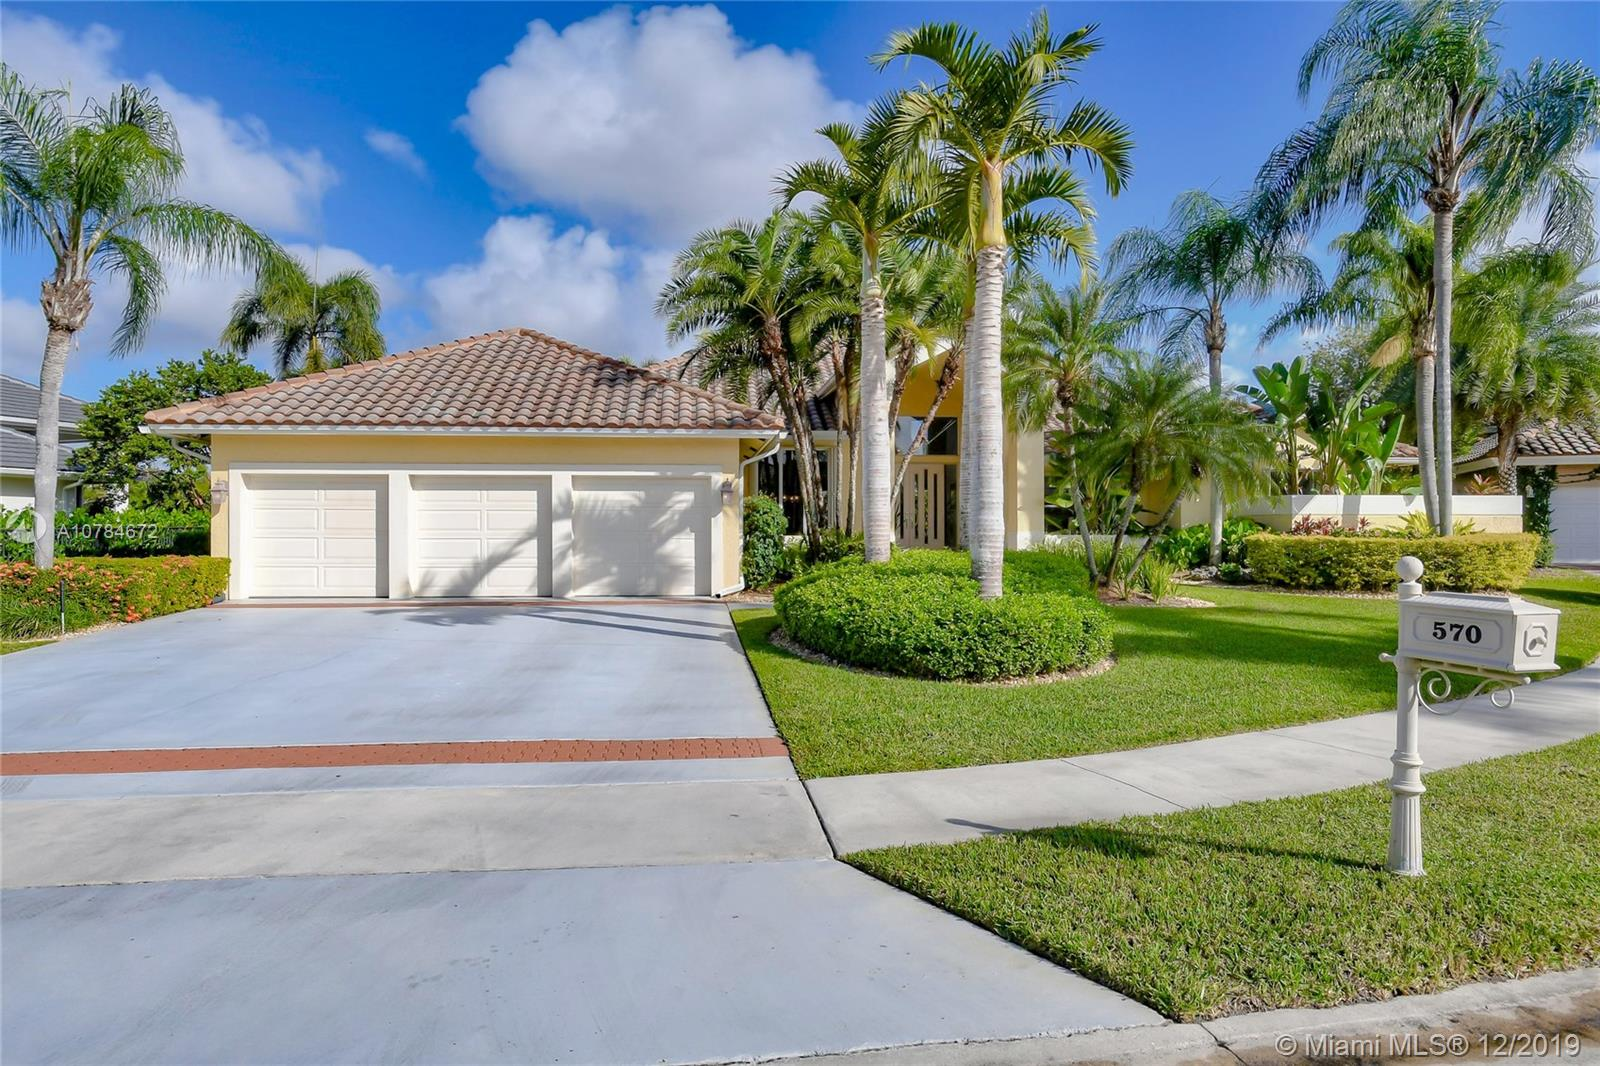 Tucked on a quiet Royal Palm tree lined cul de sac street with lush mature landscaping and endless lake views. Walking distance to Elementary and middle school. Oversized 17,646 sqft lot. Meticulously maintained, this custom one story shows light and bright. Feel the breeze as you sit on your private covered patio, overlooking vertical pool with peaceful lake views. Fully fenced and lushly landscaped. Renovated kitchen with wood cabinetry, granite countertops and Stainless Steel appliances. Full function bar. Great spacious house for entertaining family and friends. Master bath with roman tub, granite countertops and large shower. Volume ceilings in living areas and family room. https://www.youtube.com/watch?v=lCChSFJ83R4&feature=youtu.be